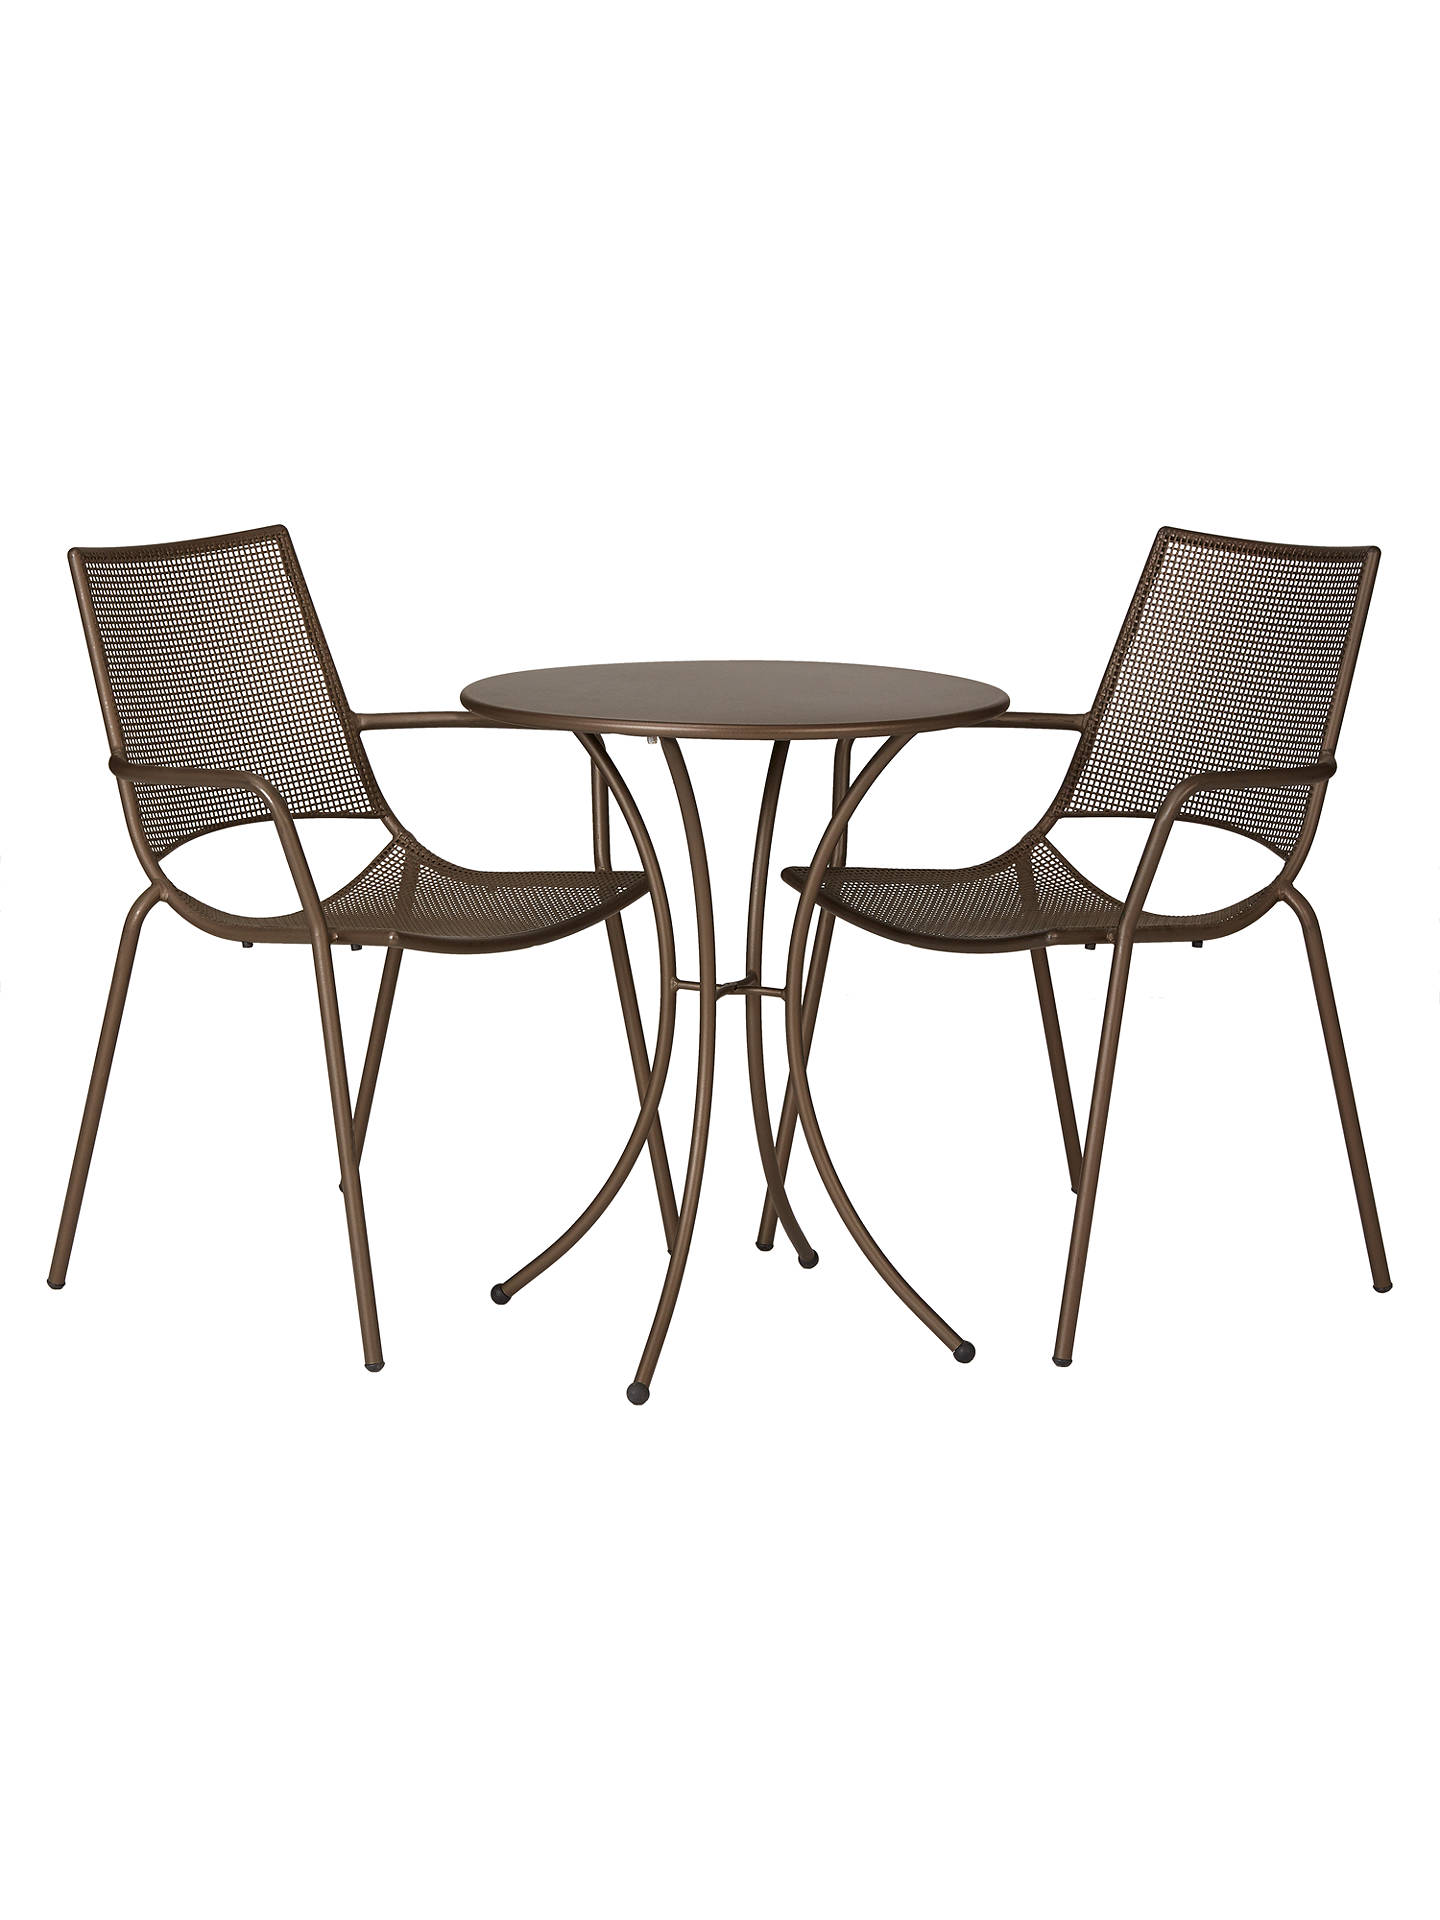 Ala Mesh Garden Table and Chairs Bistro Set, Bronze